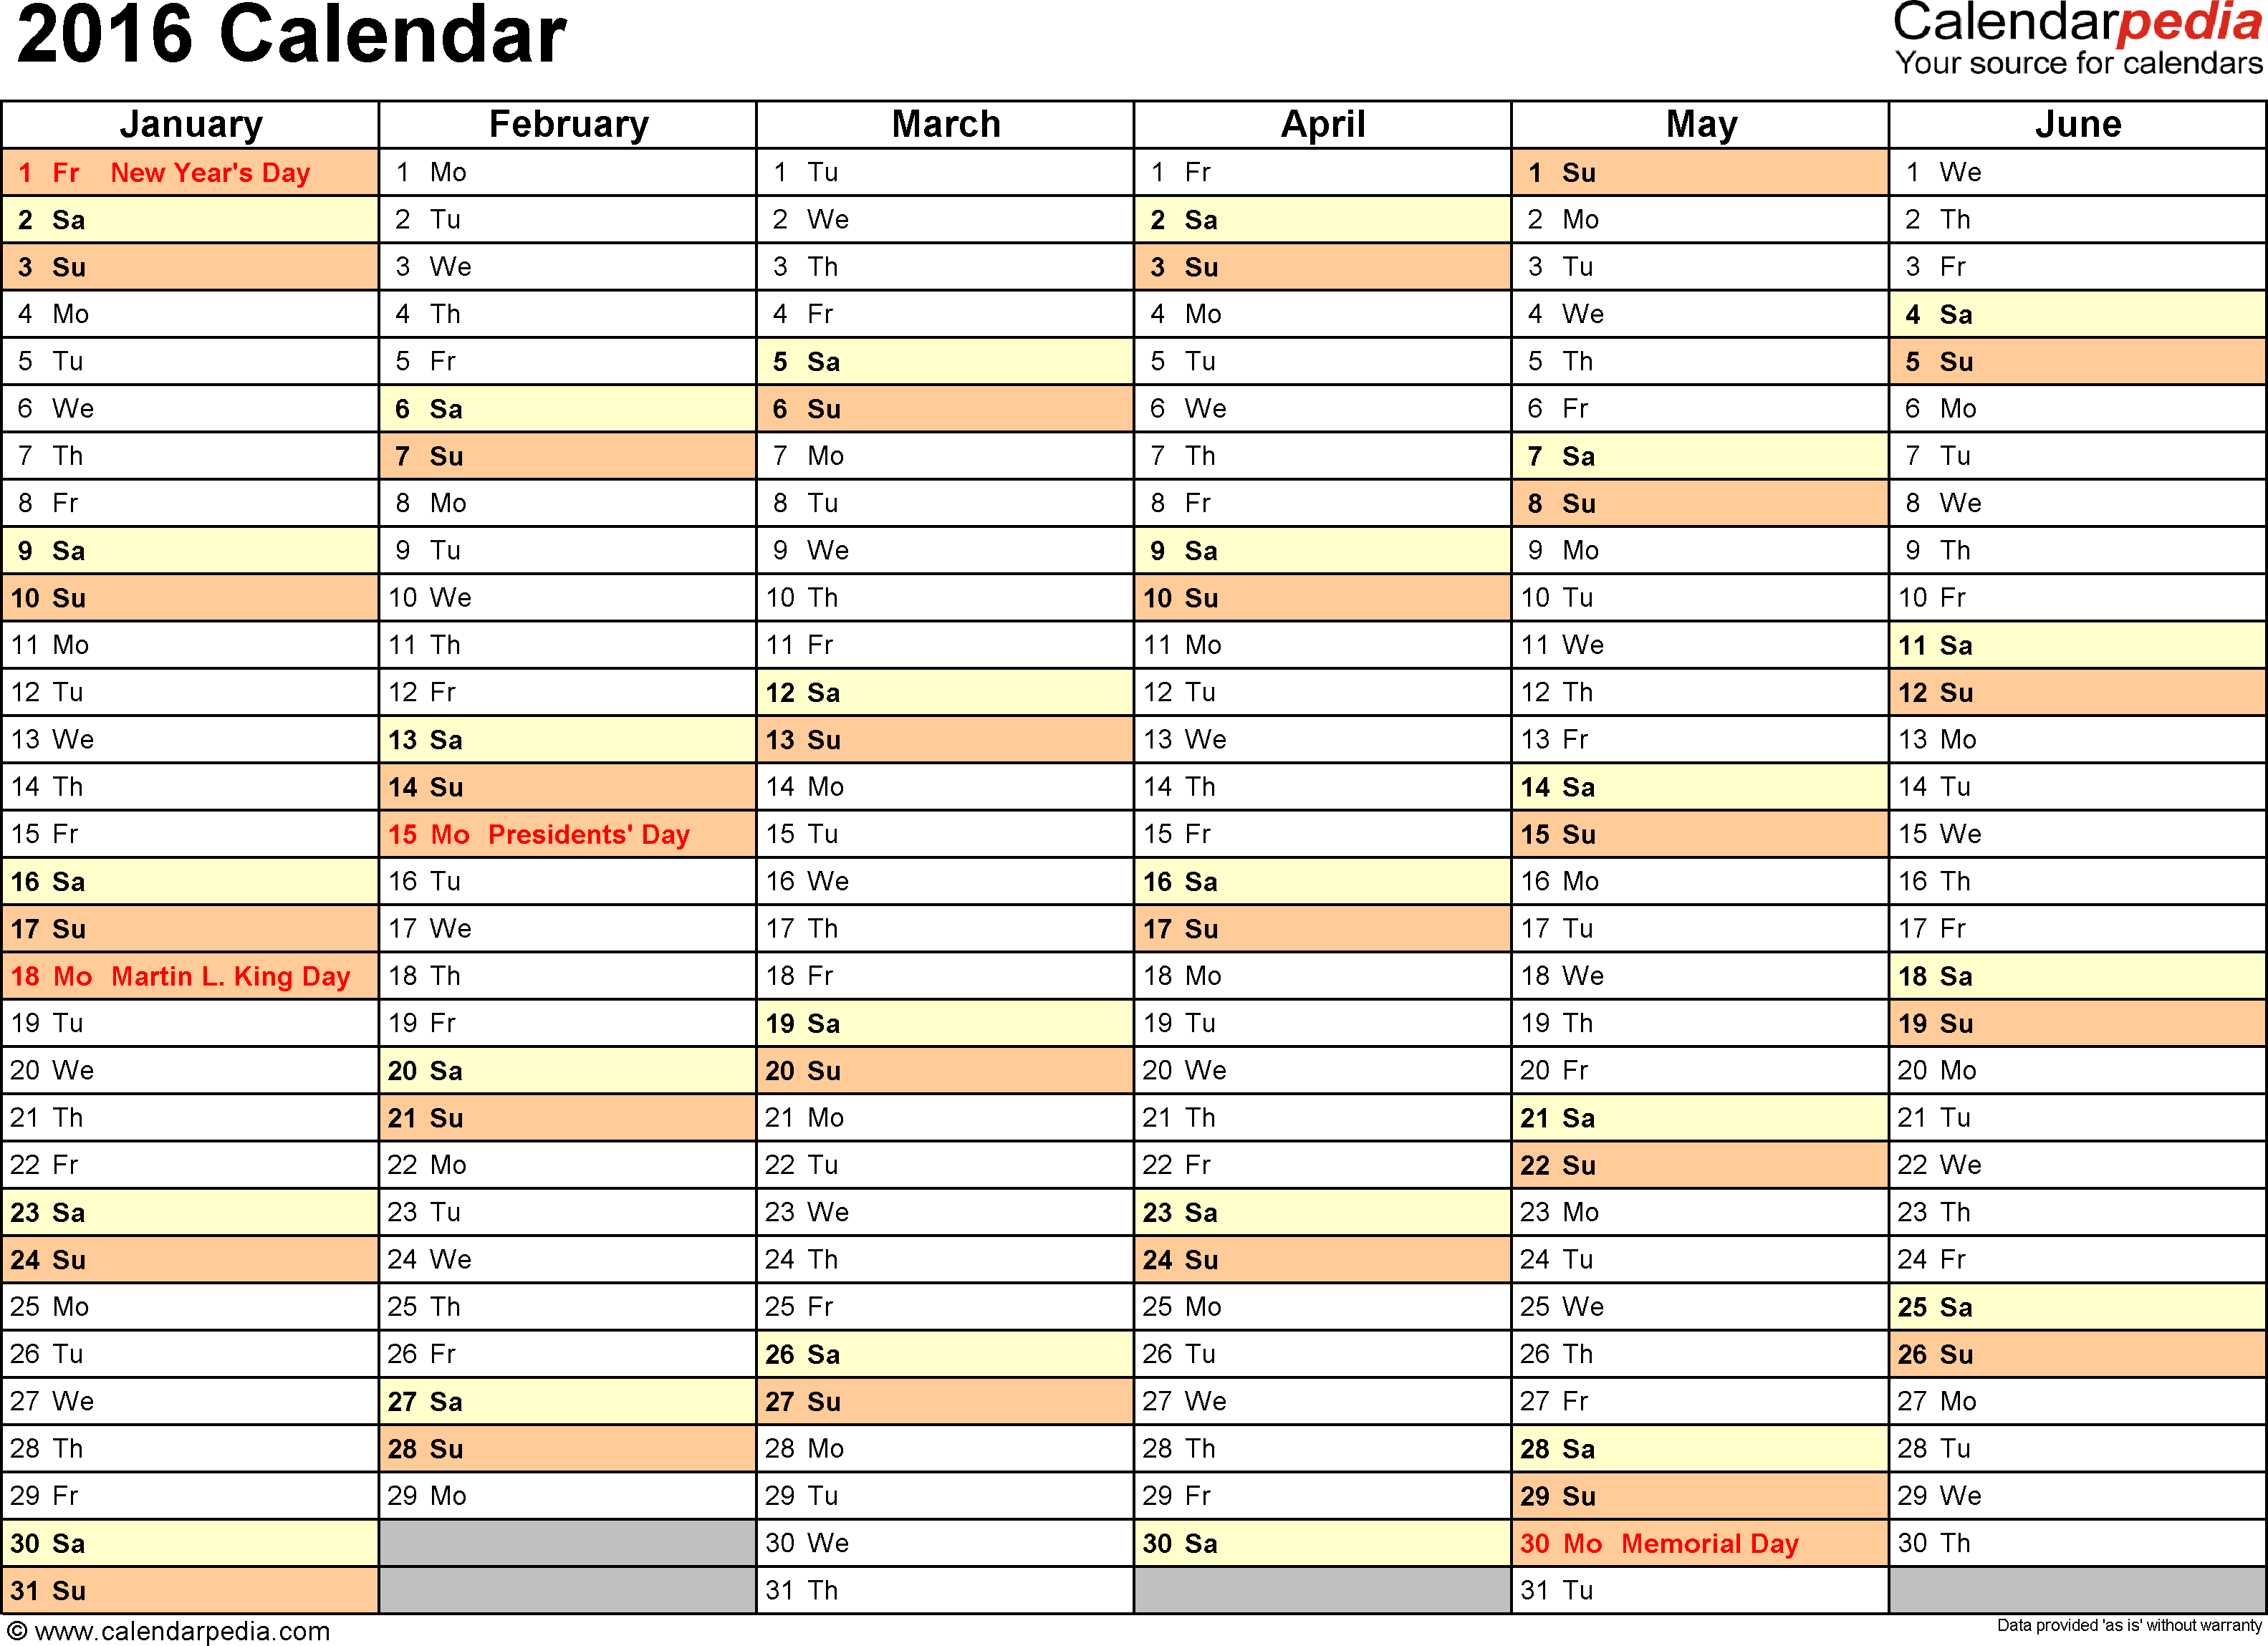 Ediblewildsus  Marvellous  Calendar  Download  Free Printable Excel Templates Xls With Likable Template   Calendar For Excel Months Horizontally  Pages Landscape Orientation With Divine Excel Function Sum Also Excel Formula Wizard In Addition Excel Function Number And Join  Cells In Excel As Well As Excel Copy And Paste Not Working Additionally How To Make A Total Column In Excel From Calendarpediacom With Ediblewildsus  Likable  Calendar  Download  Free Printable Excel Templates Xls With Divine Template   Calendar For Excel Months Horizontally  Pages Landscape Orientation And Marvellous Excel Function Sum Also Excel Formula Wizard In Addition Excel Function Number From Calendarpediacom